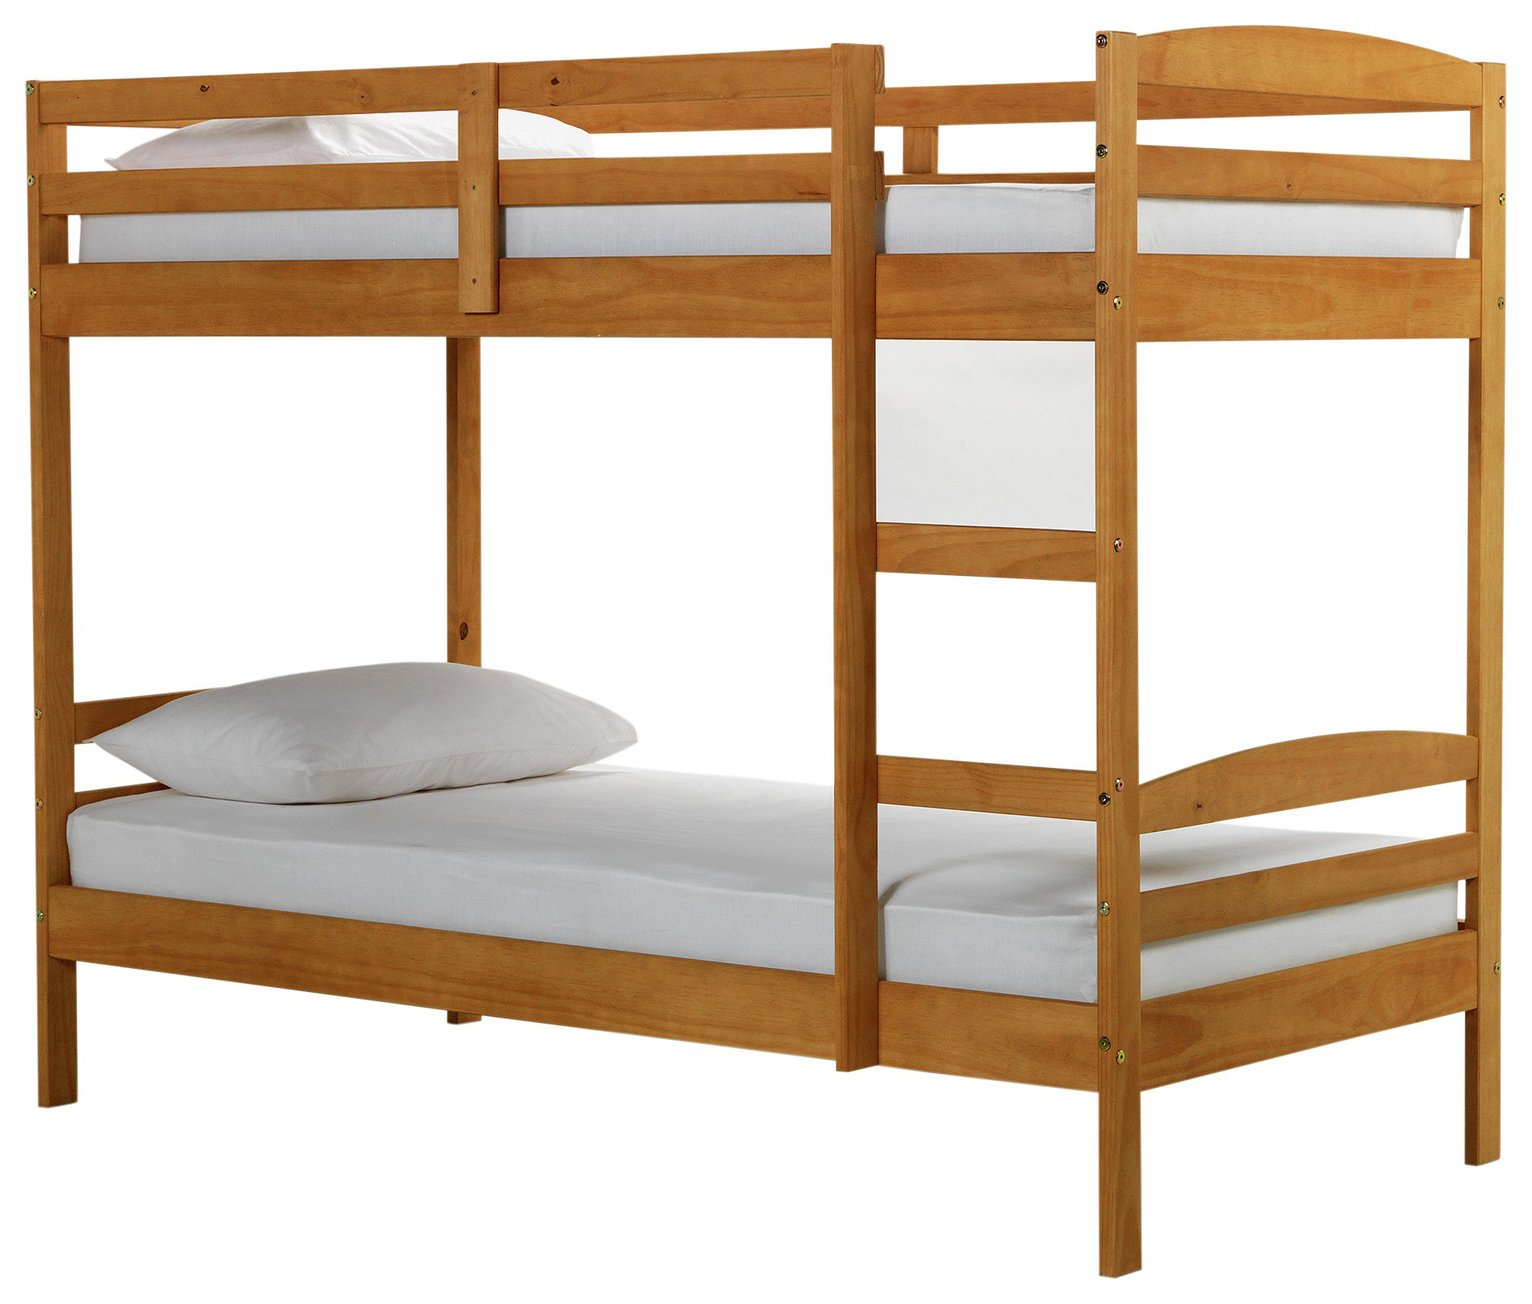 Josie shorty bunk bed frame pine octer for Bunk bed frame